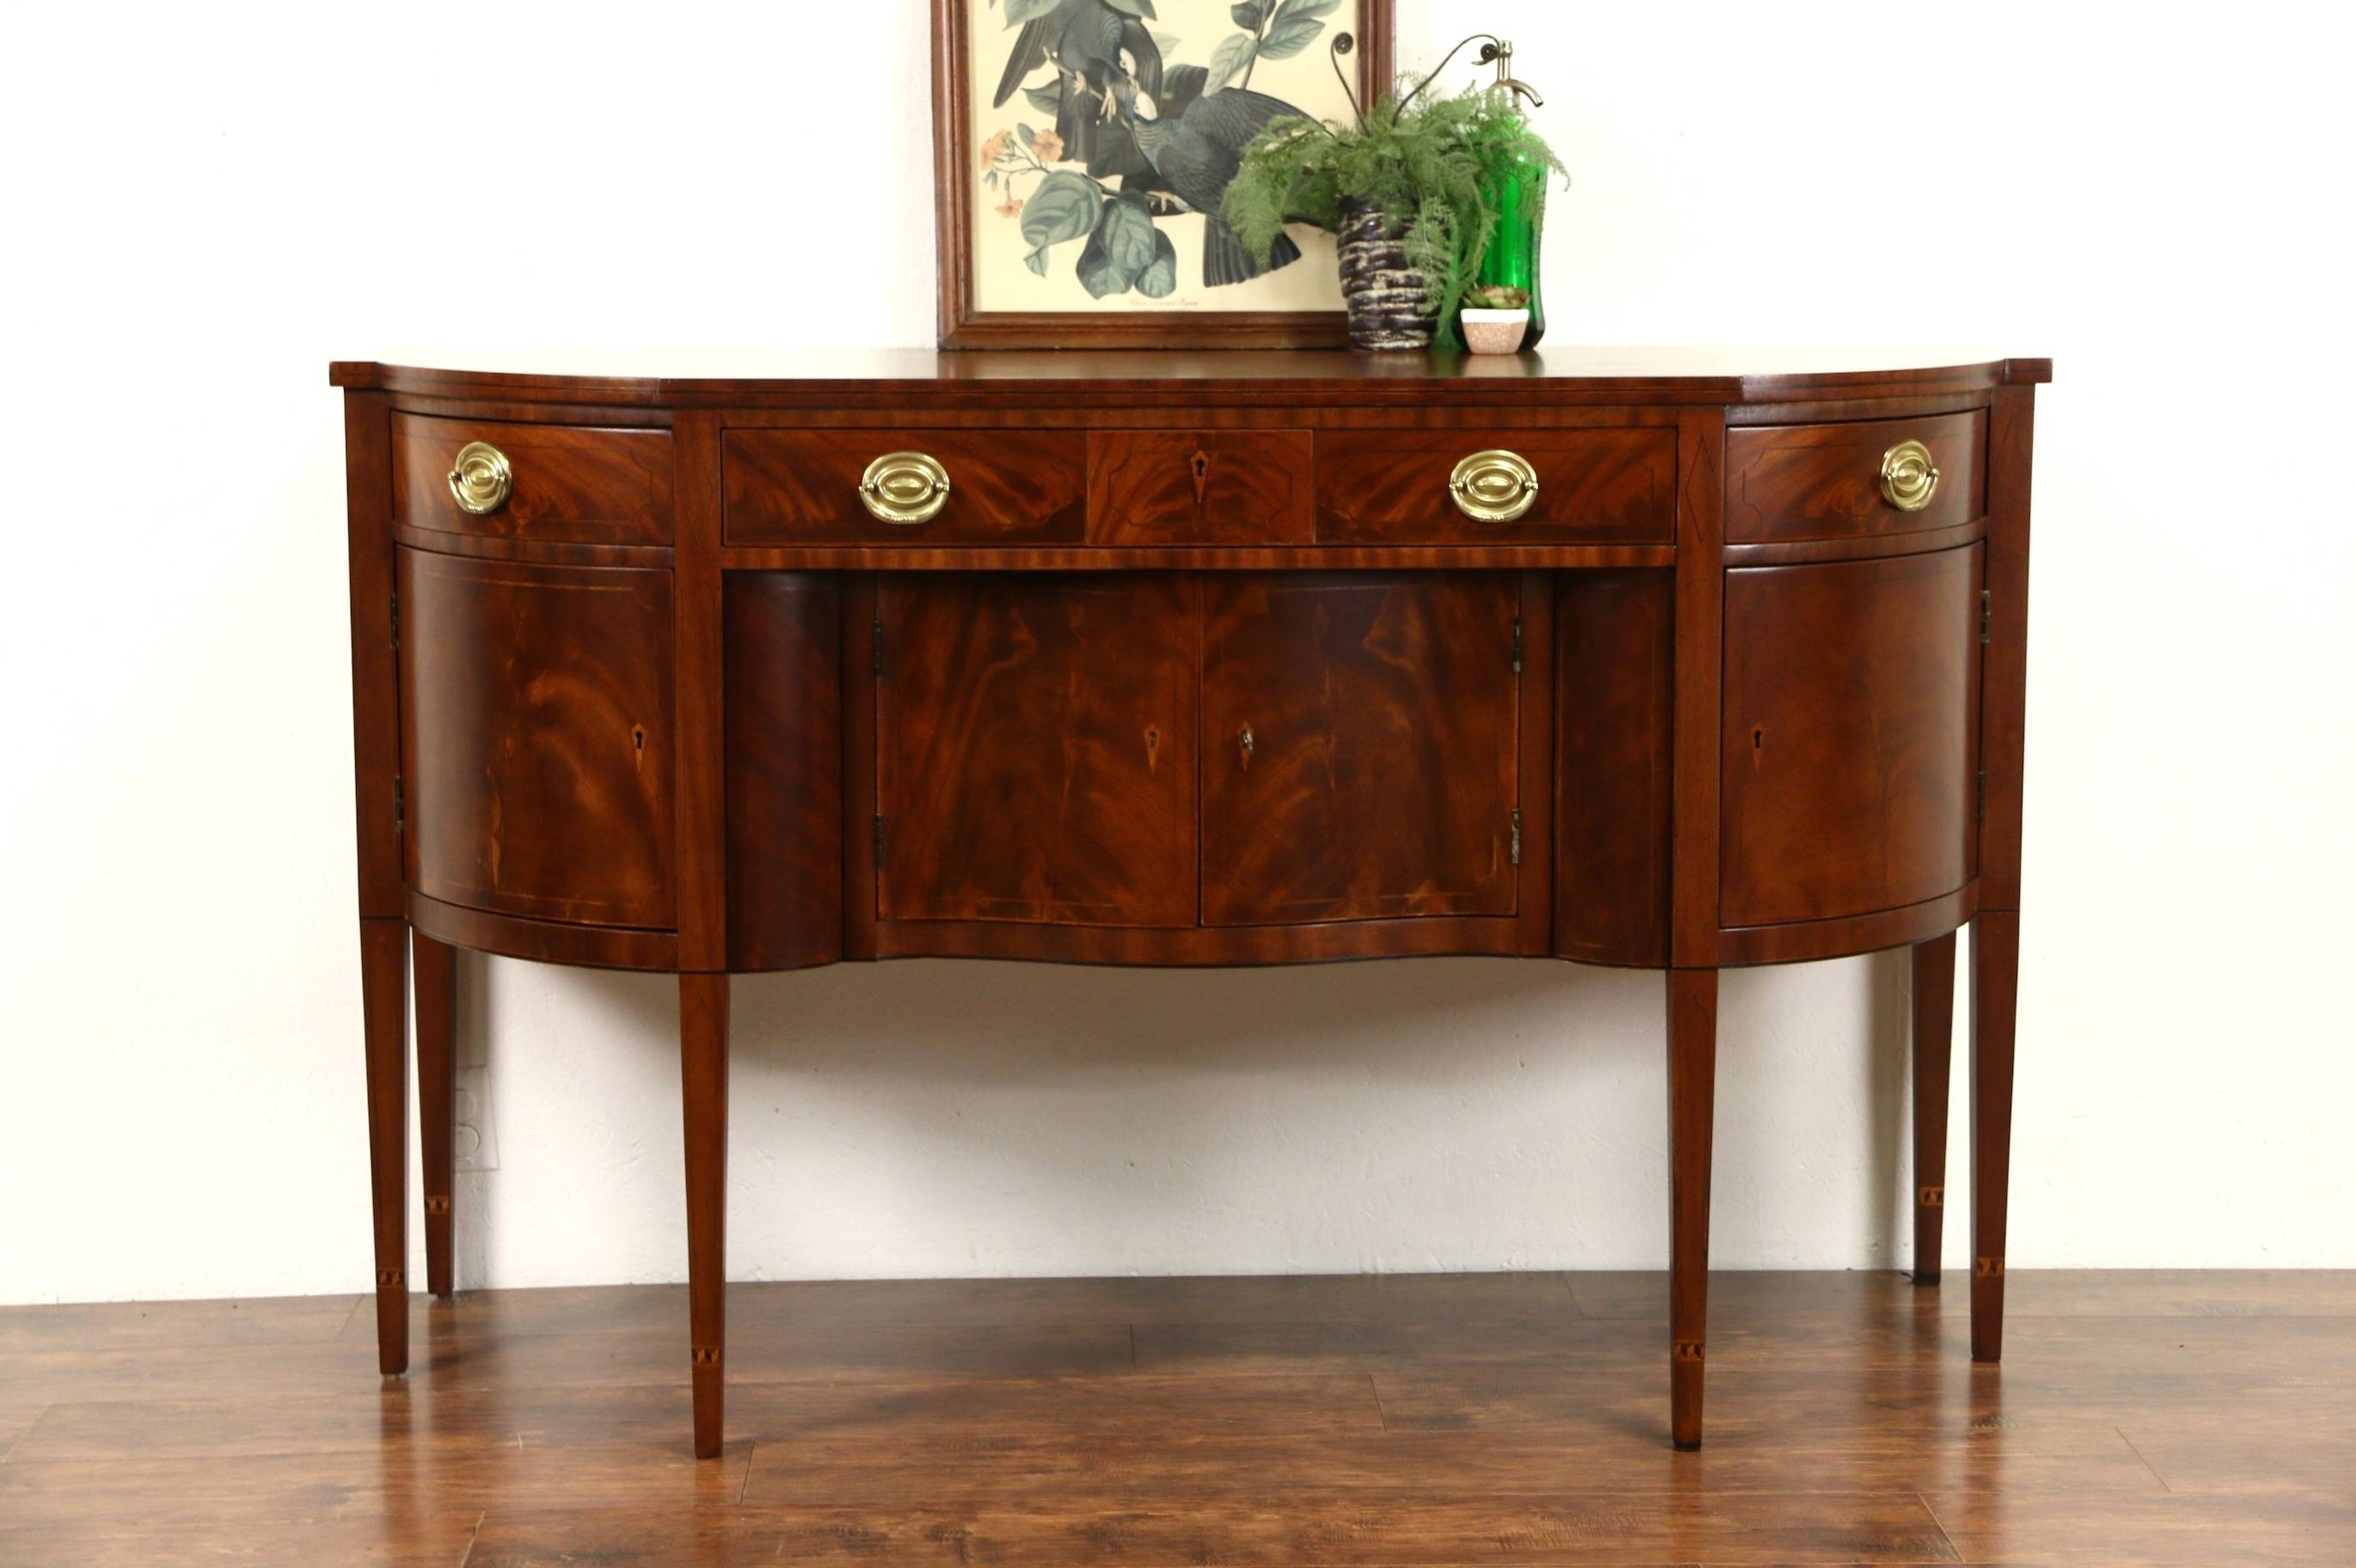 Sold - Henredon Natchez Collection Vintage Mahogany Sideboard throughout Mahogany Sideboards Buffets (Image 14 of 15)